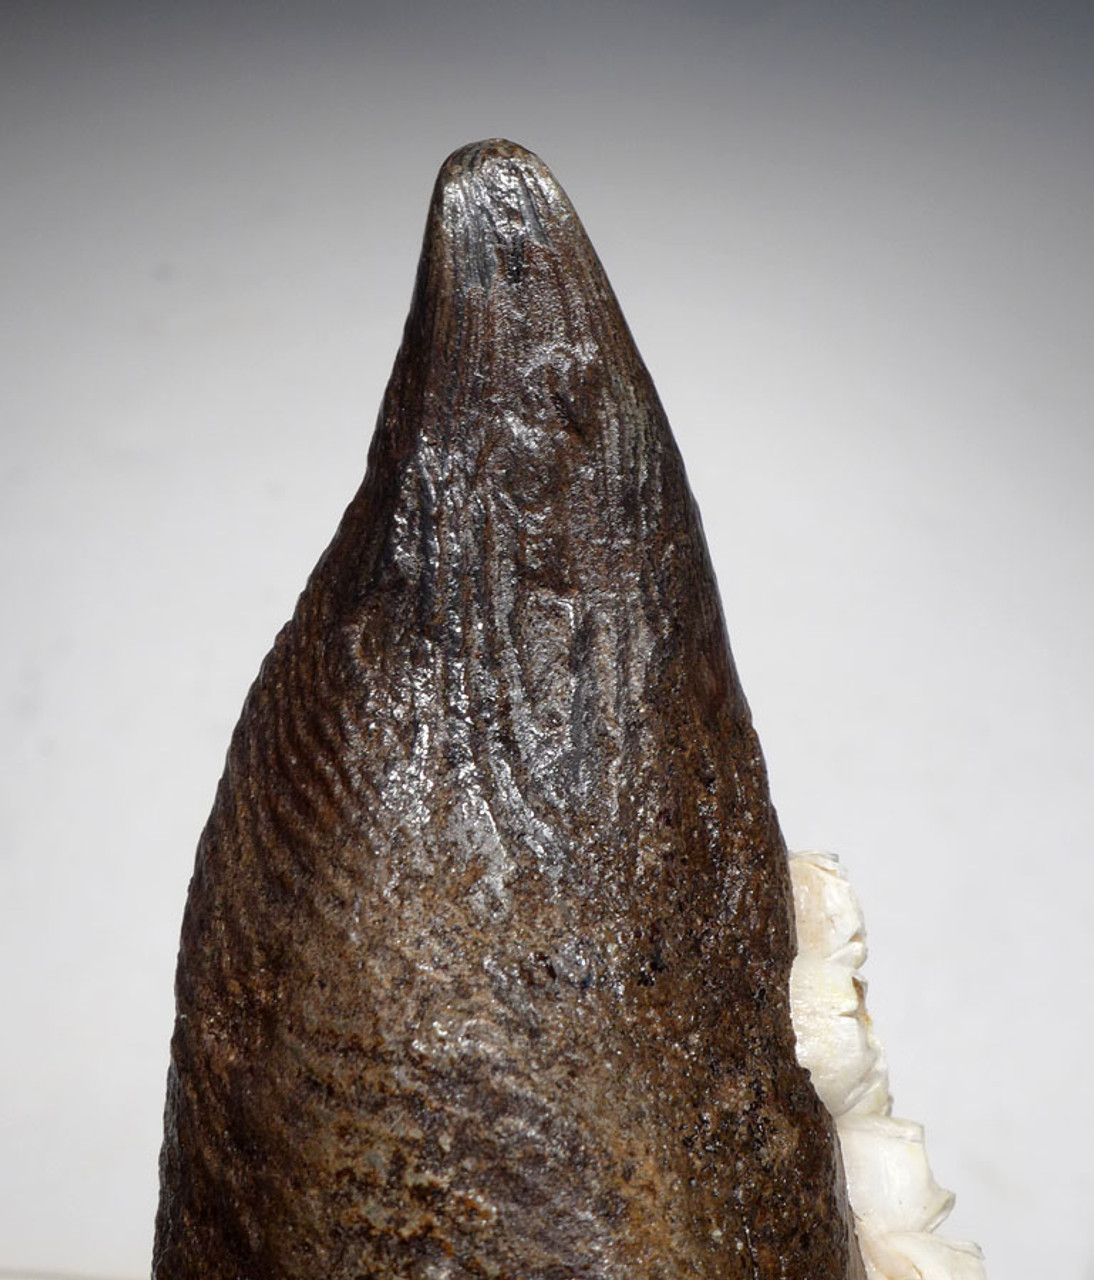 WH028 - MUSEUM GRADE ROBUST 5.25 INCH PREHISTORIC SPERM WHALE TOOTH WITH FULL CROWN AND BARNACLE ENCRUSTED ROOT